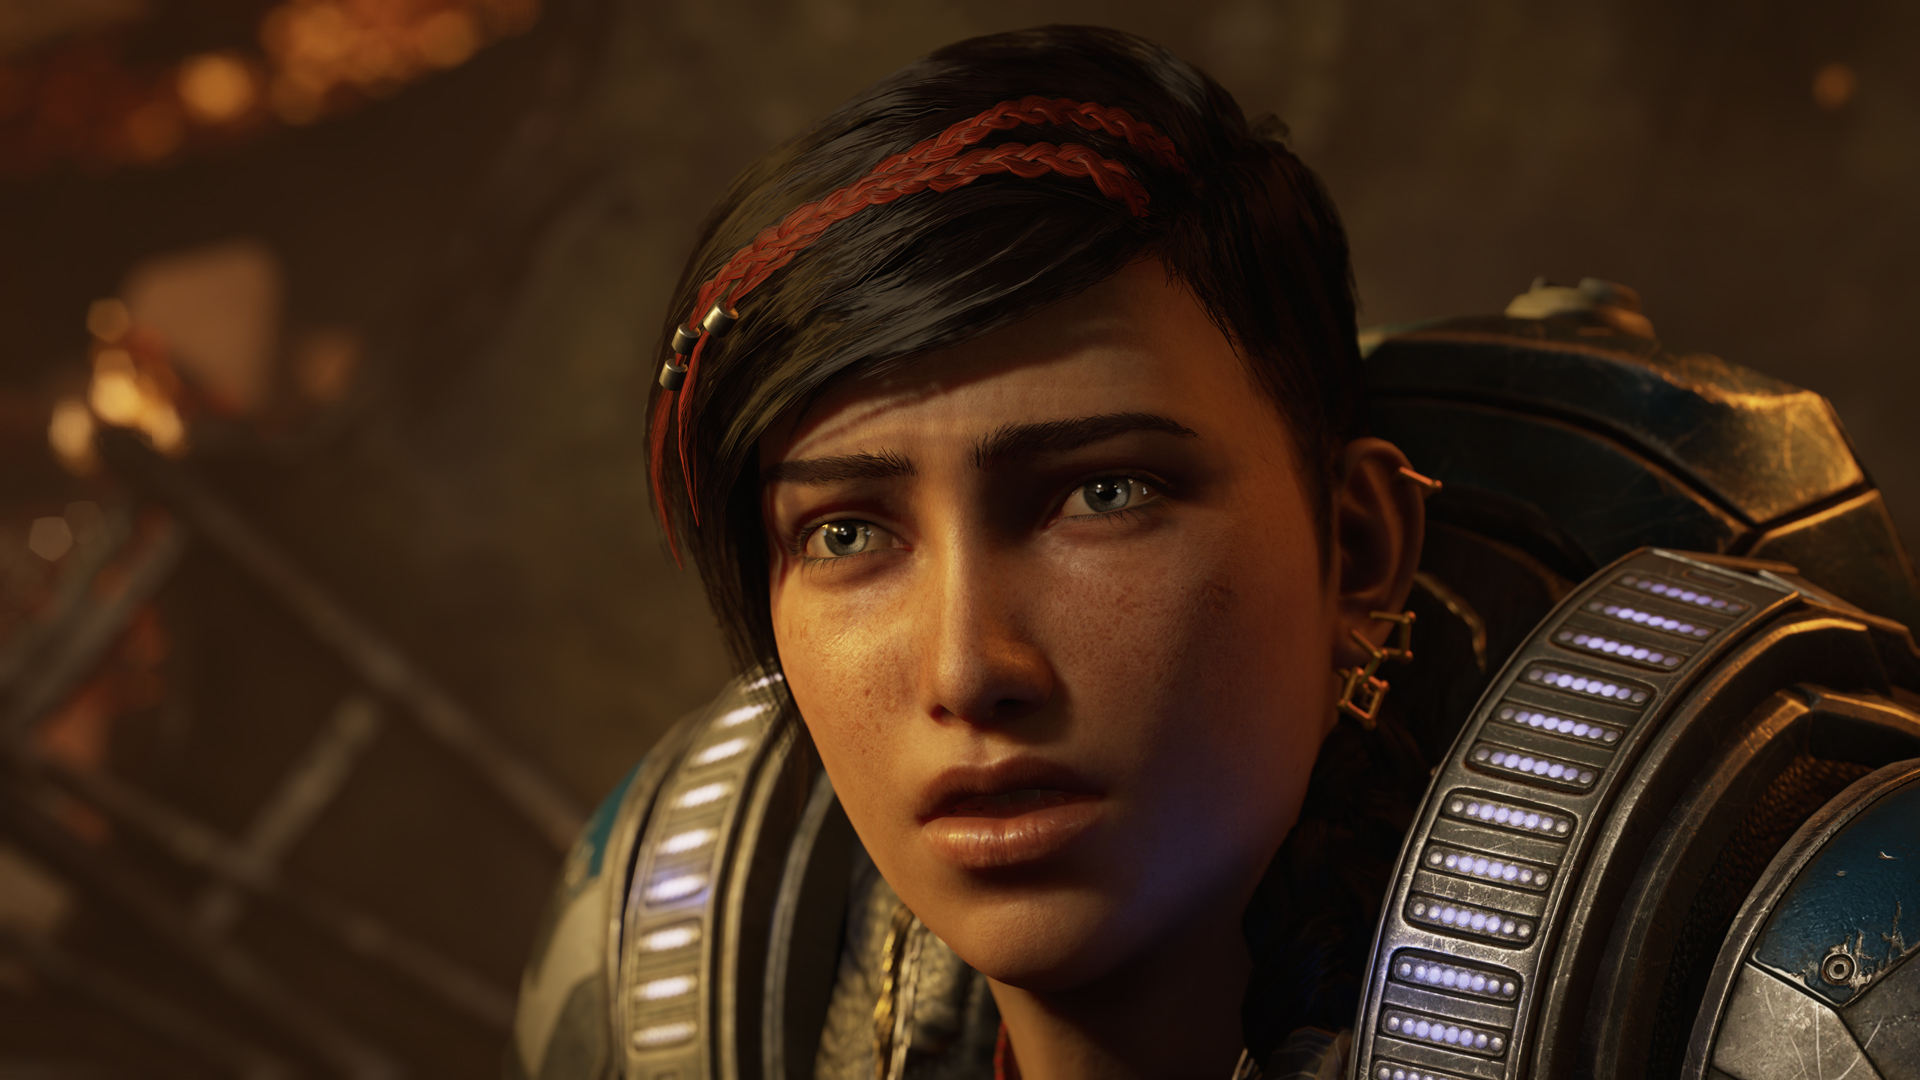 Prepare for the Gears 5 campaign with this Gears of War 4